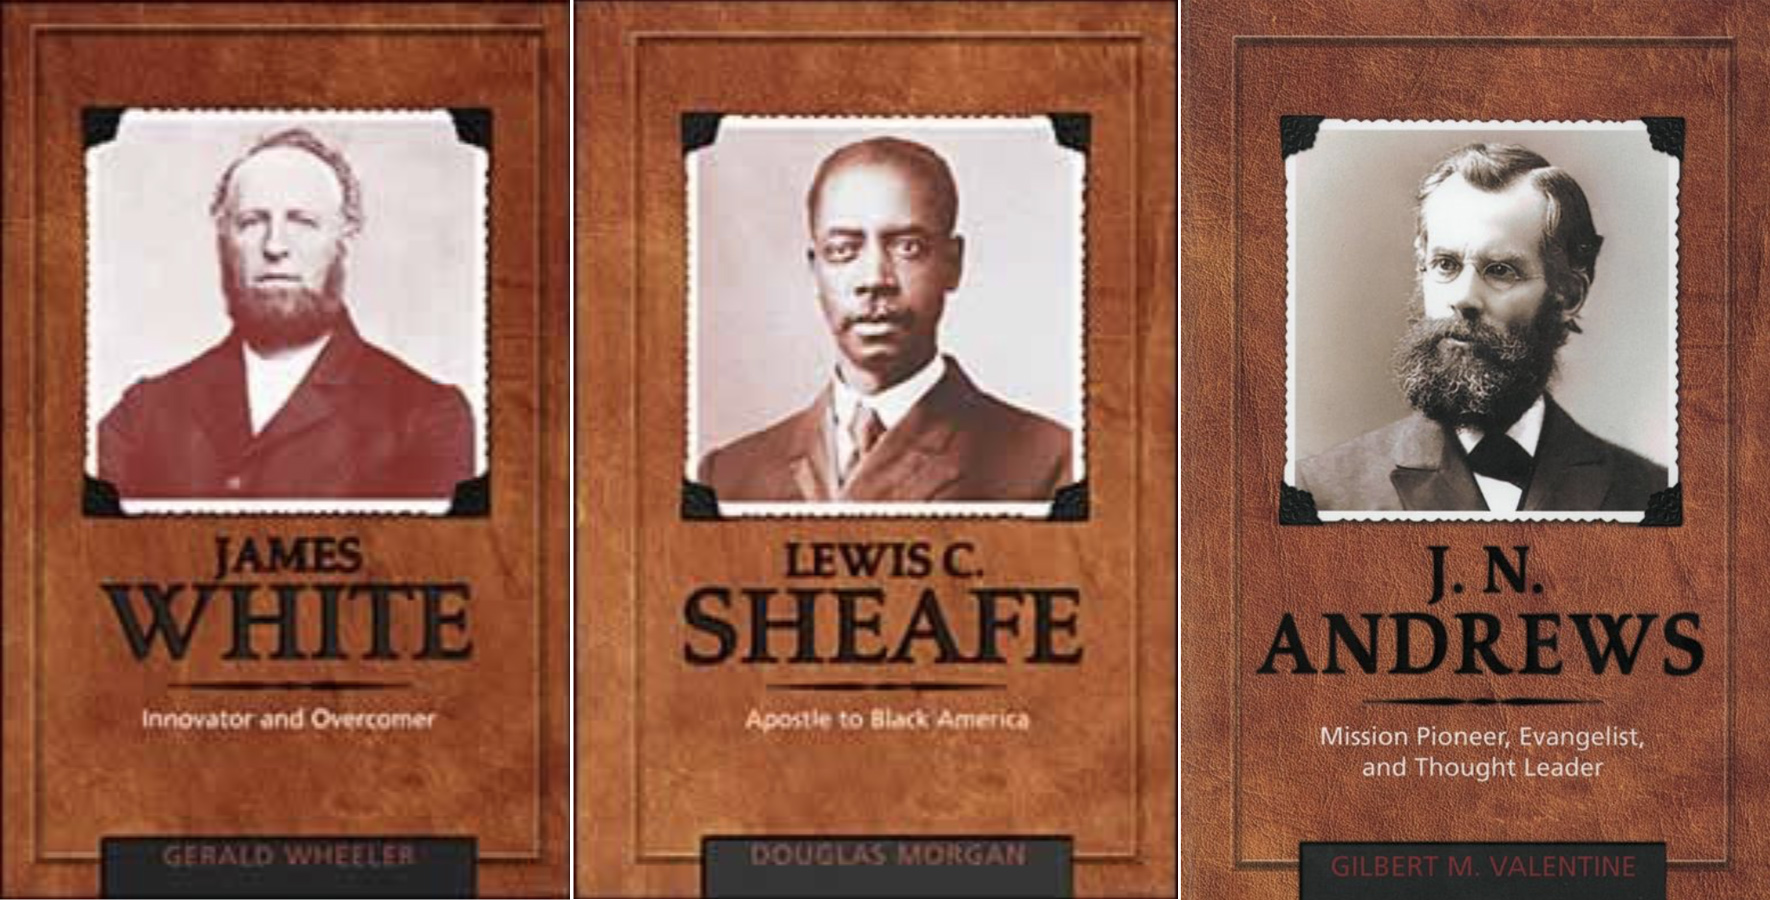 Adventist Biography Series three covers